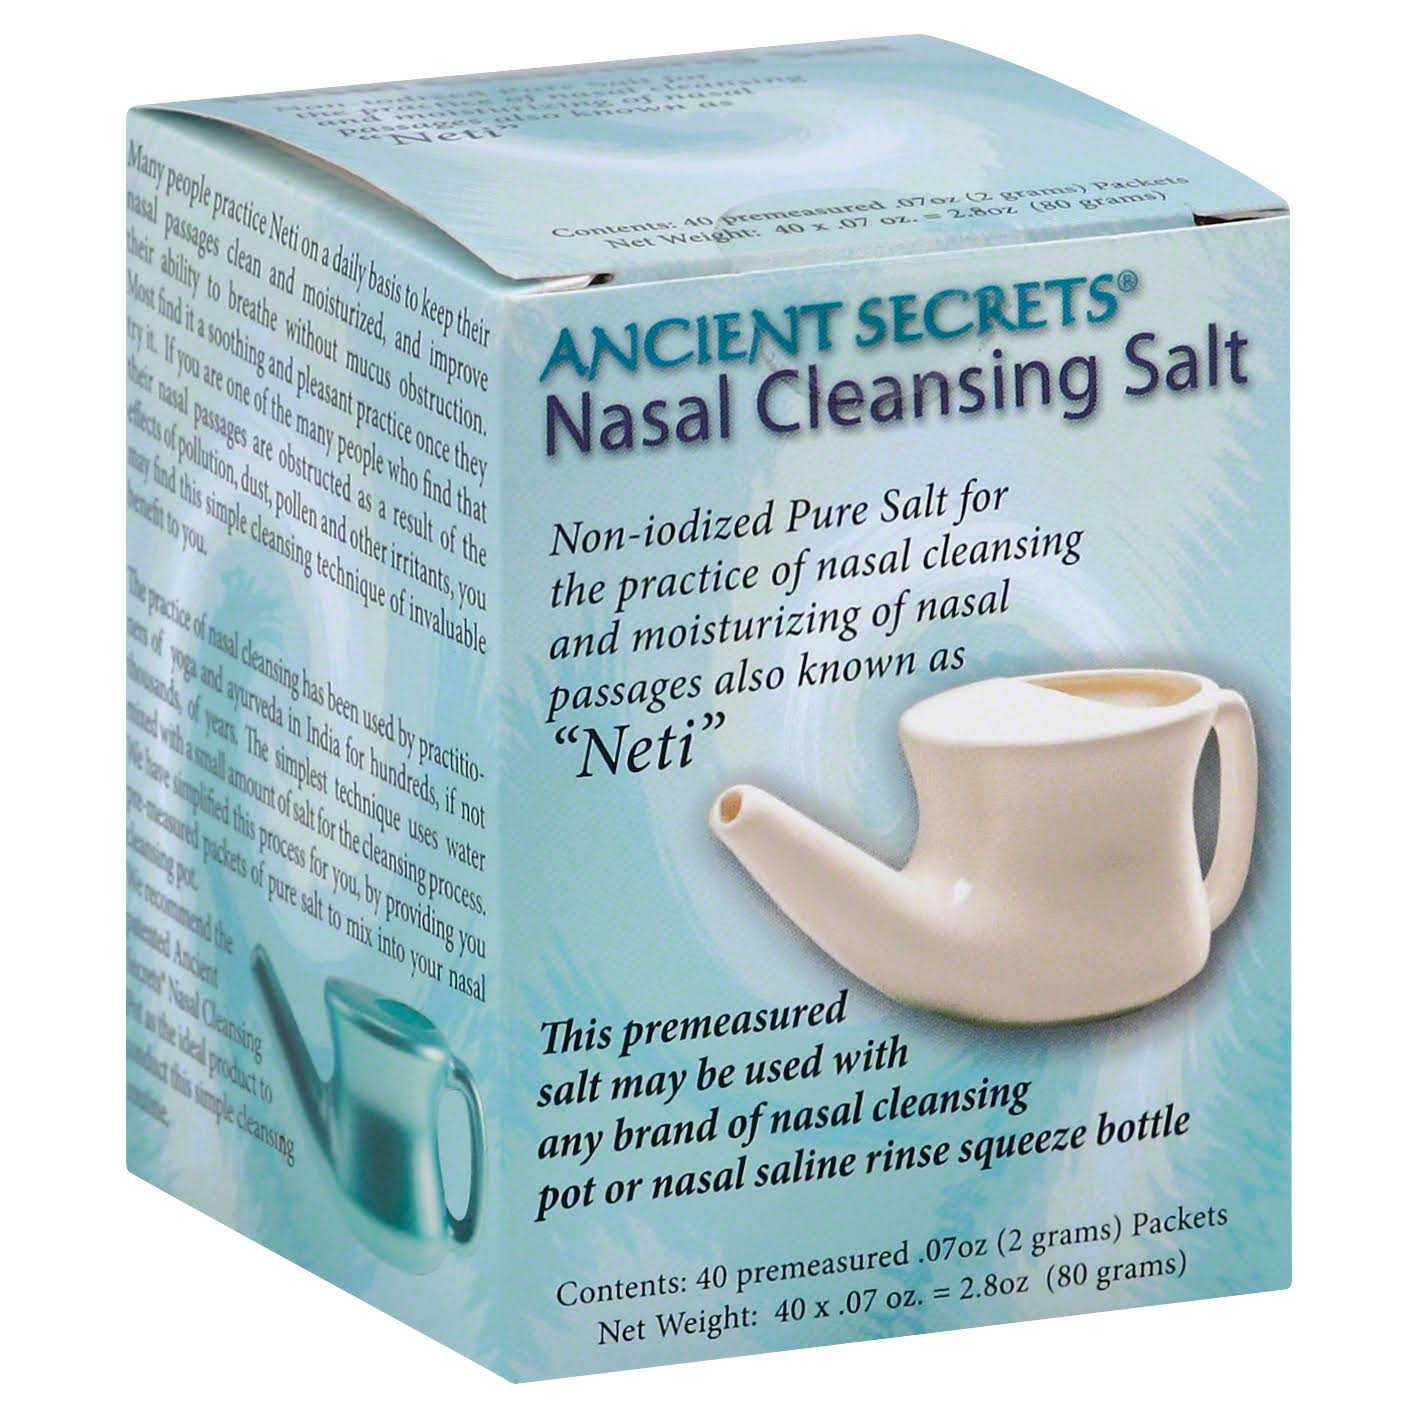 Ancient Secrets Nasal Cleansing Salt - 40 pack, 0.07 oz packets